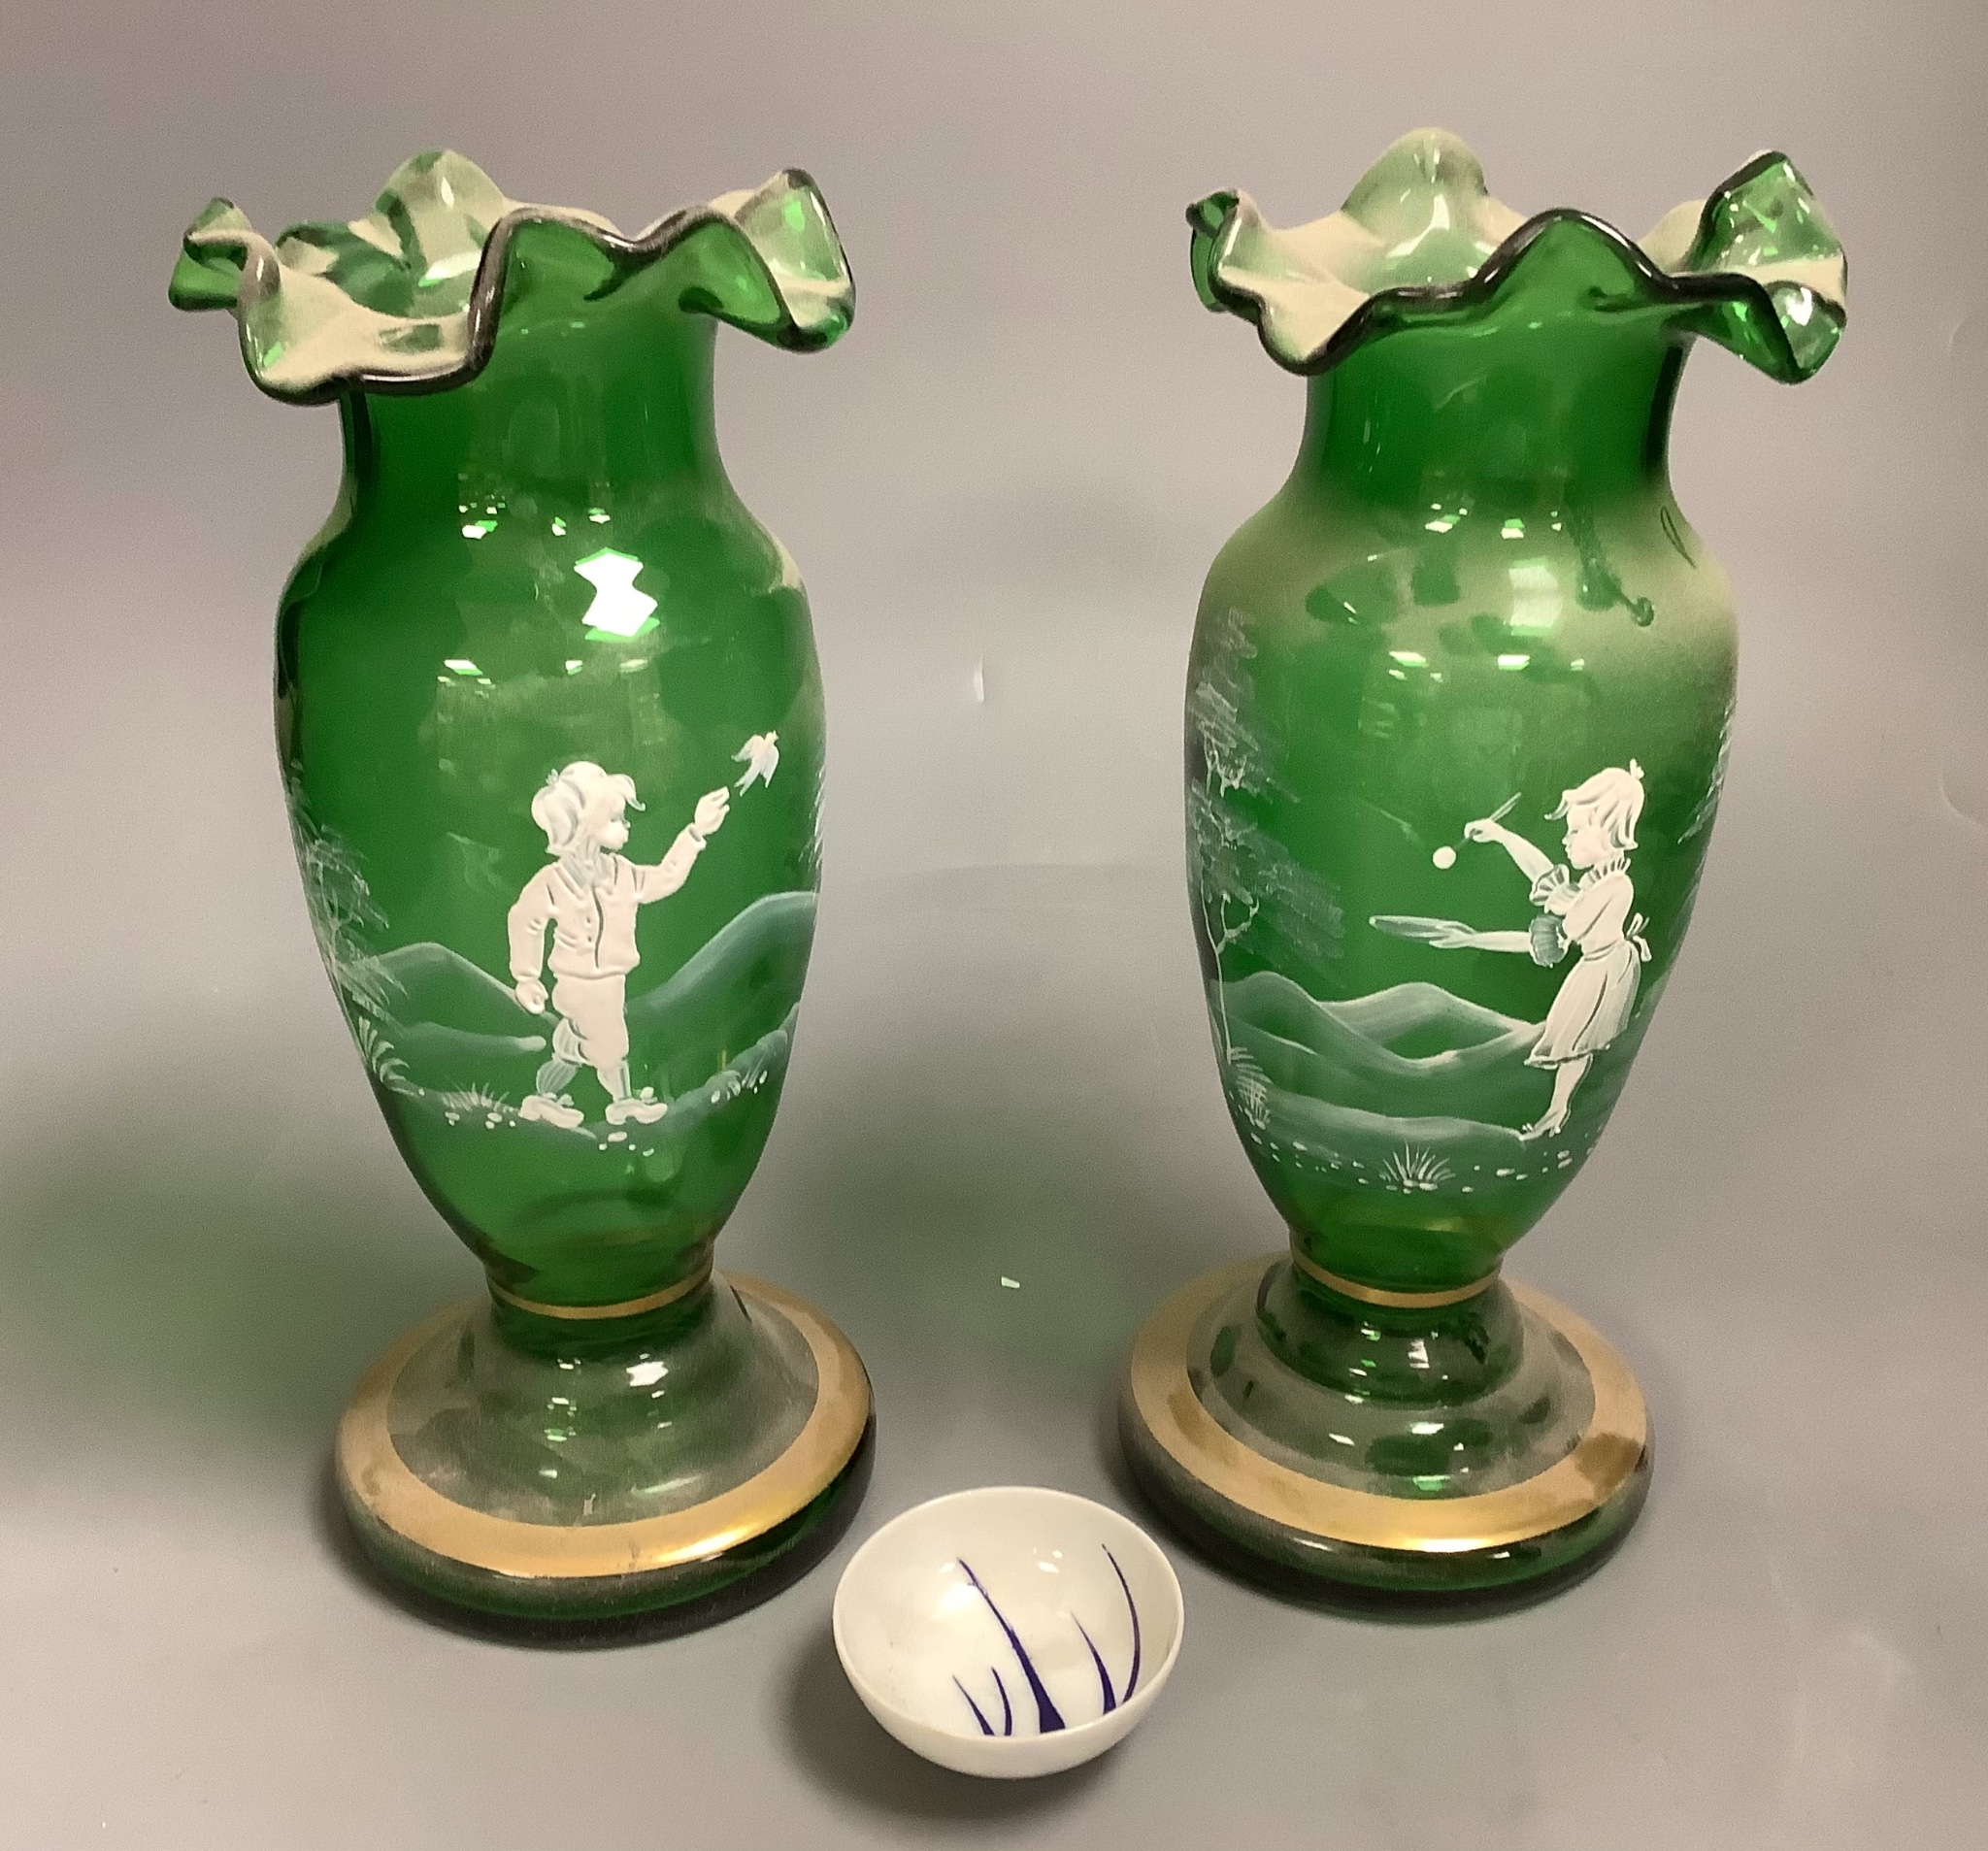 A pair of Mary Gregory style green glass vases and a soy sauce dish